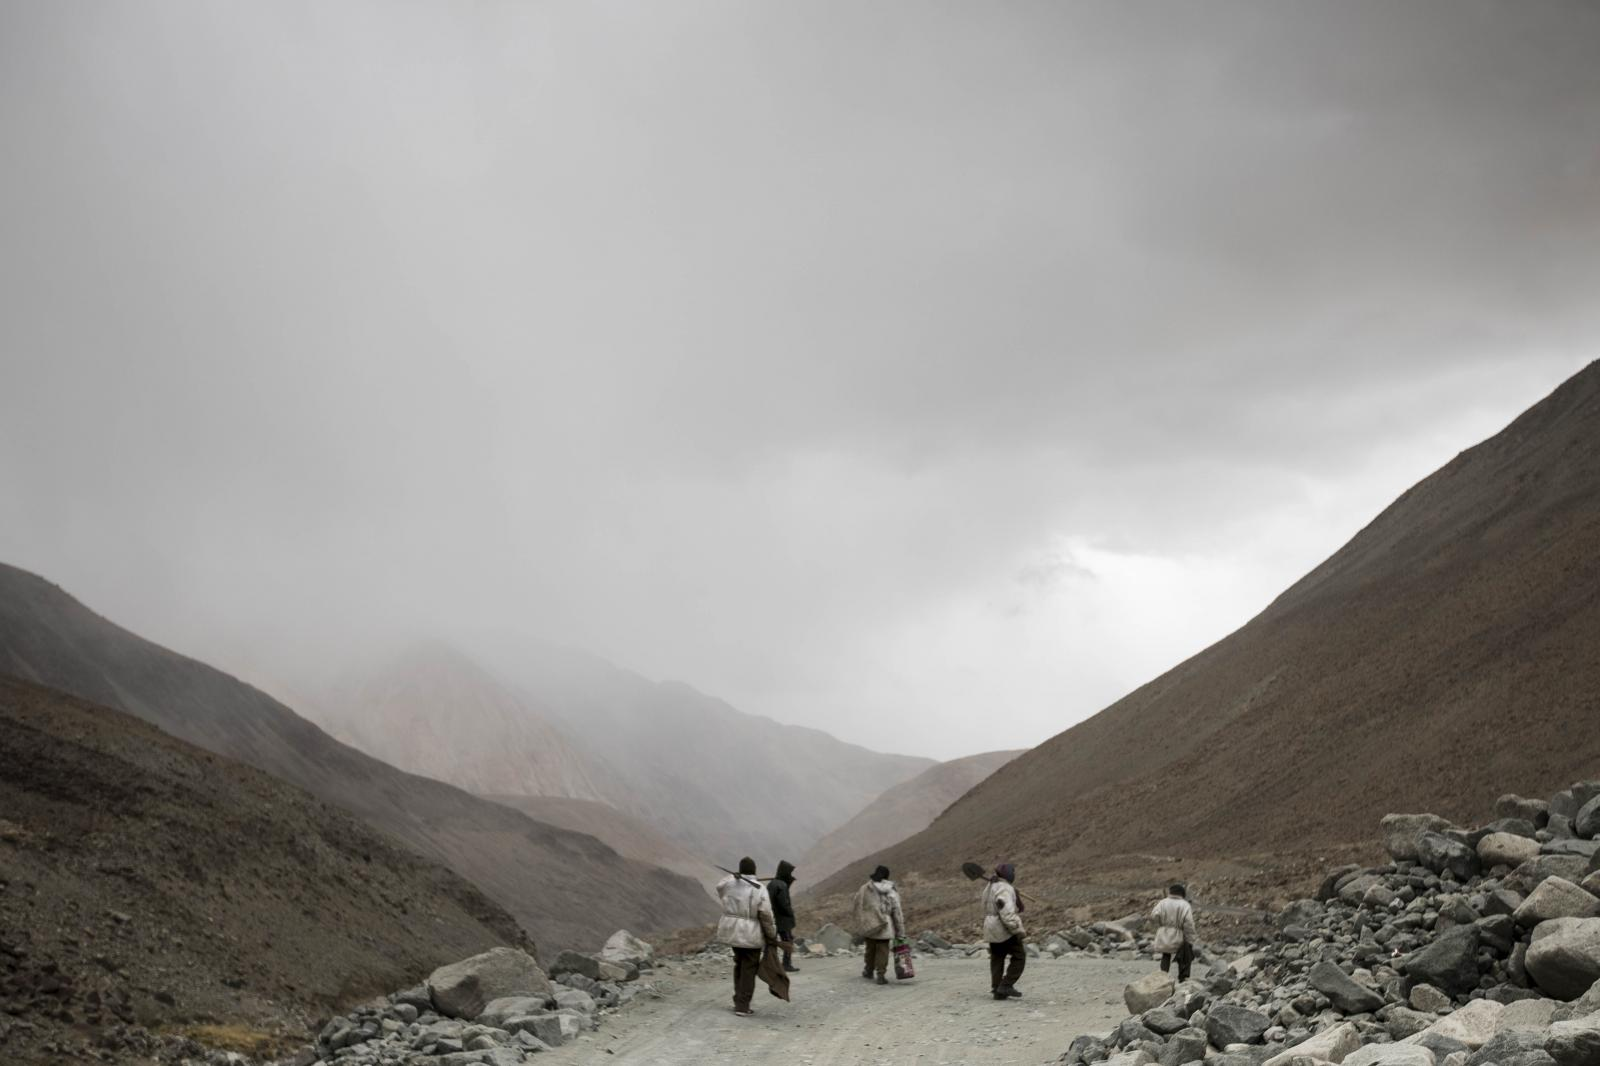 Road maintenance workers from Jharkhand state head back to their campsite following a day's work along Pangong Lake road near the Chang La pass in northern India's Ladakh region.